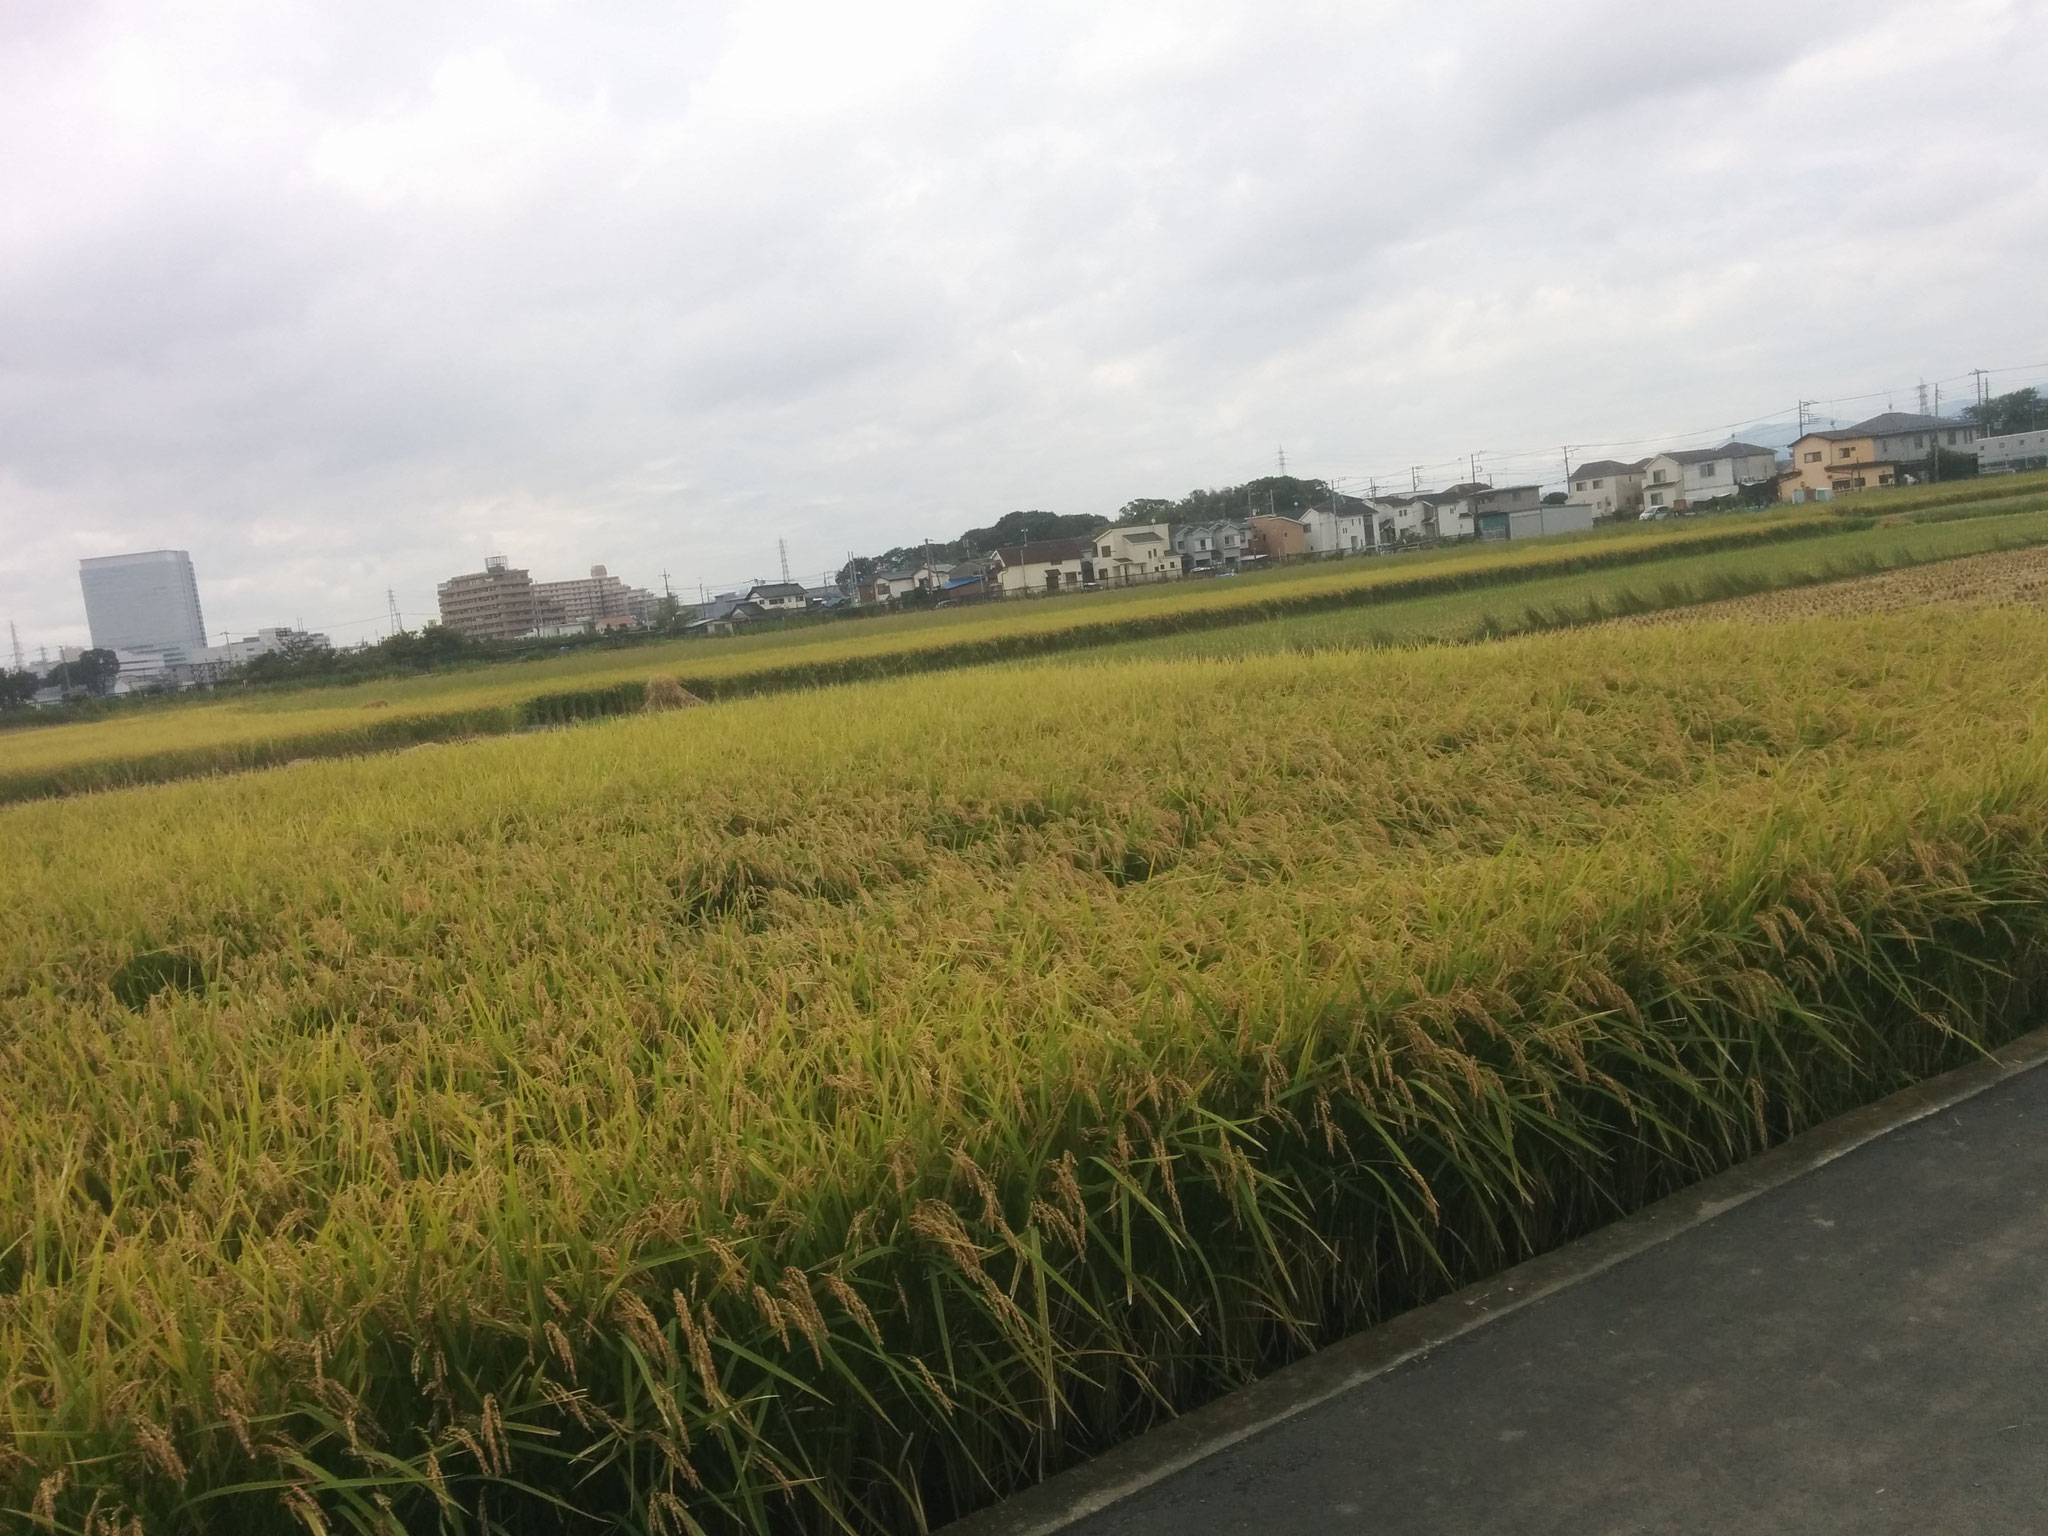 25 The rice field we worked on